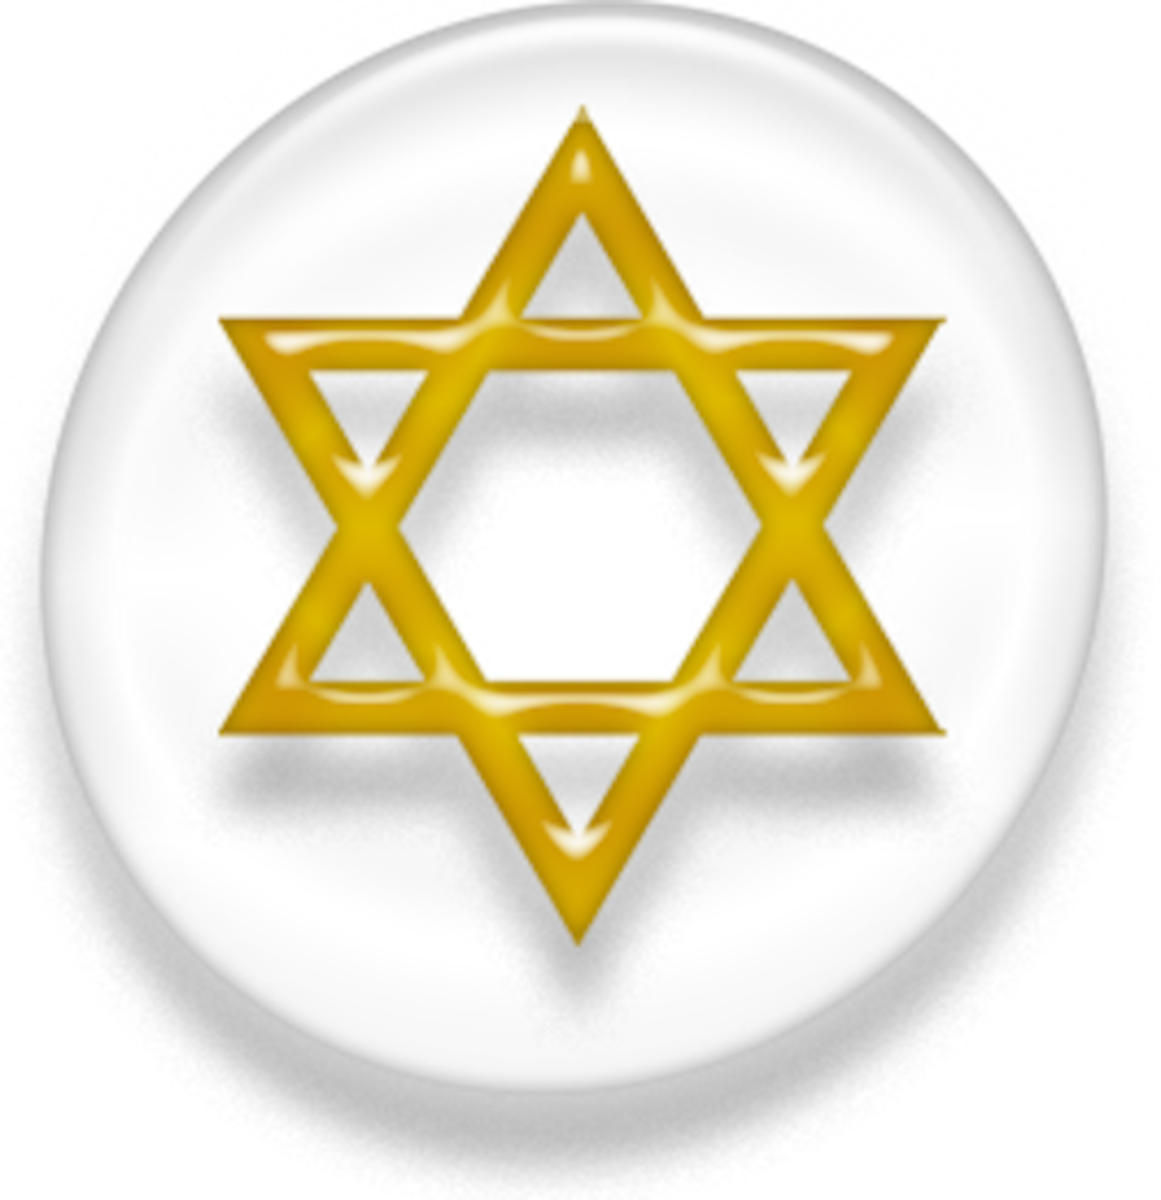 Also known as the Star of David